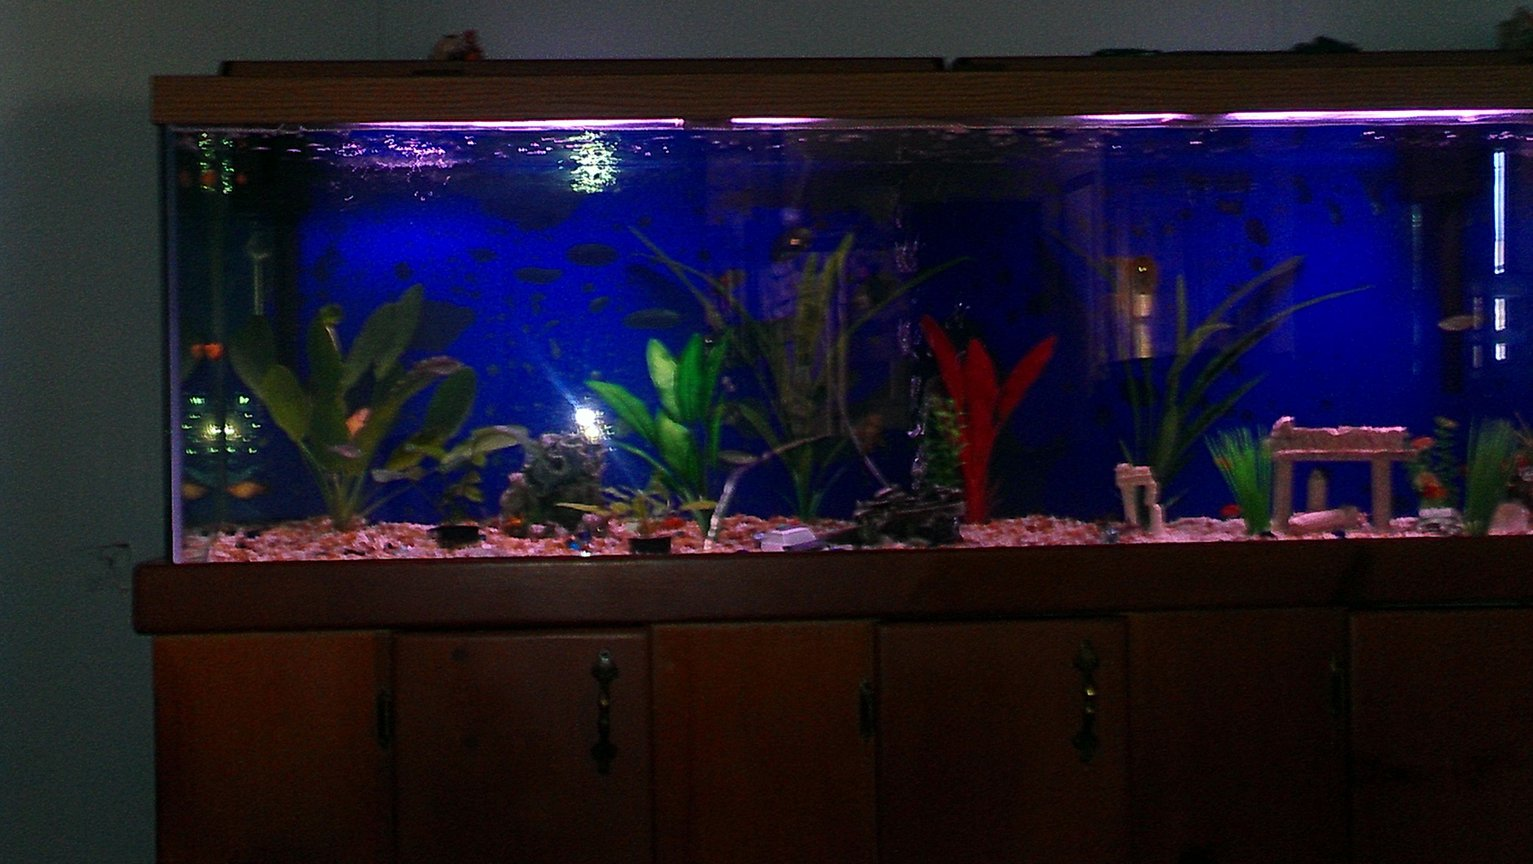 fish tank picture - Looks nice in the dark.